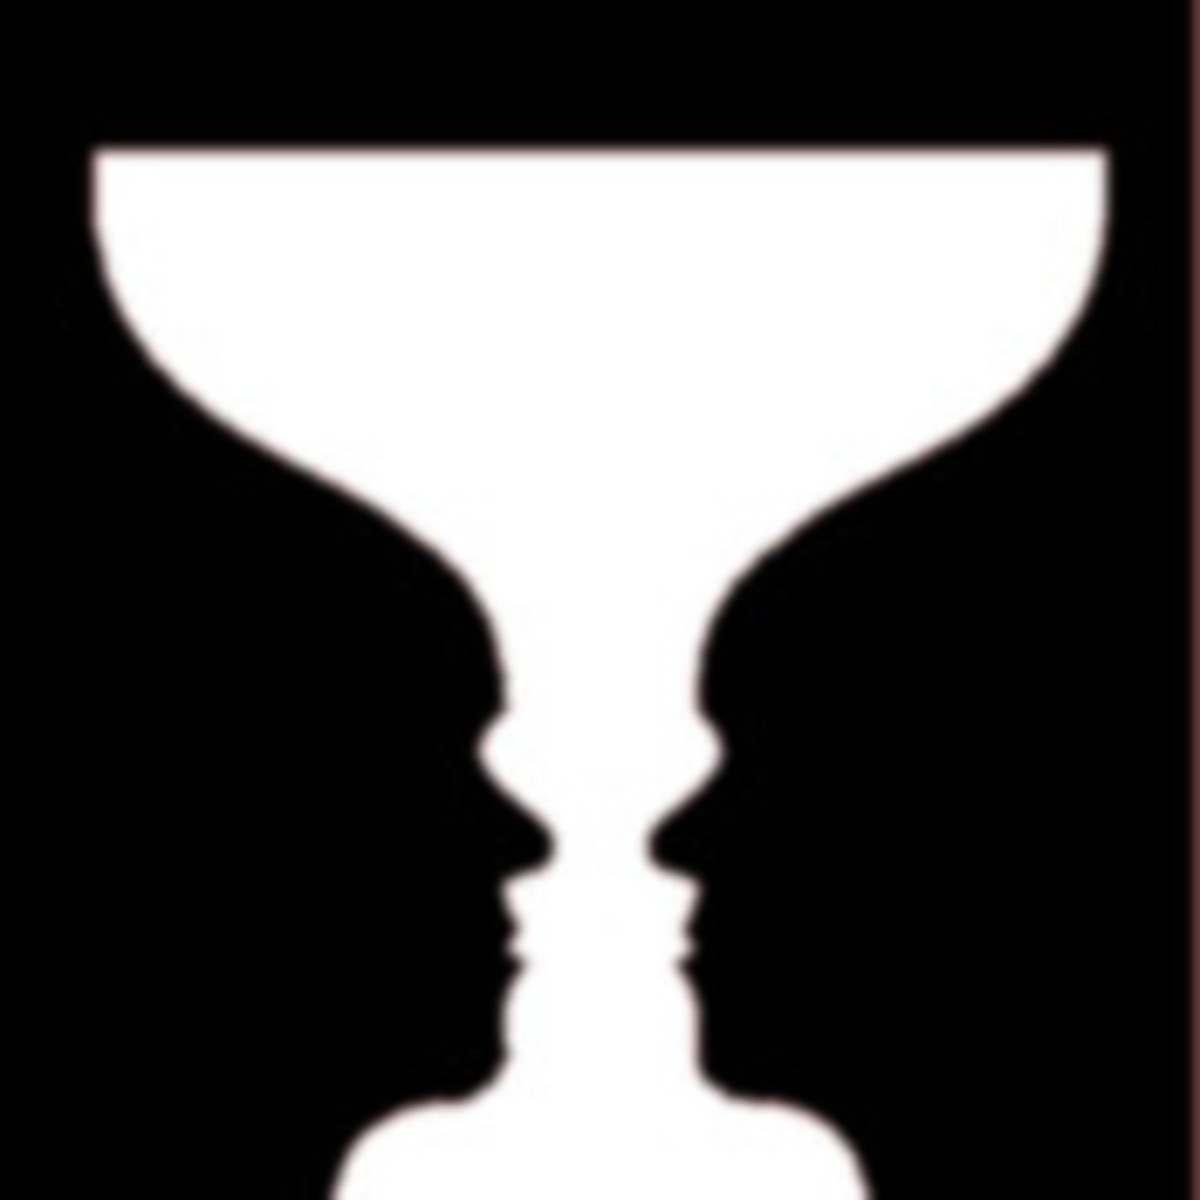 Two faces or a goblet?